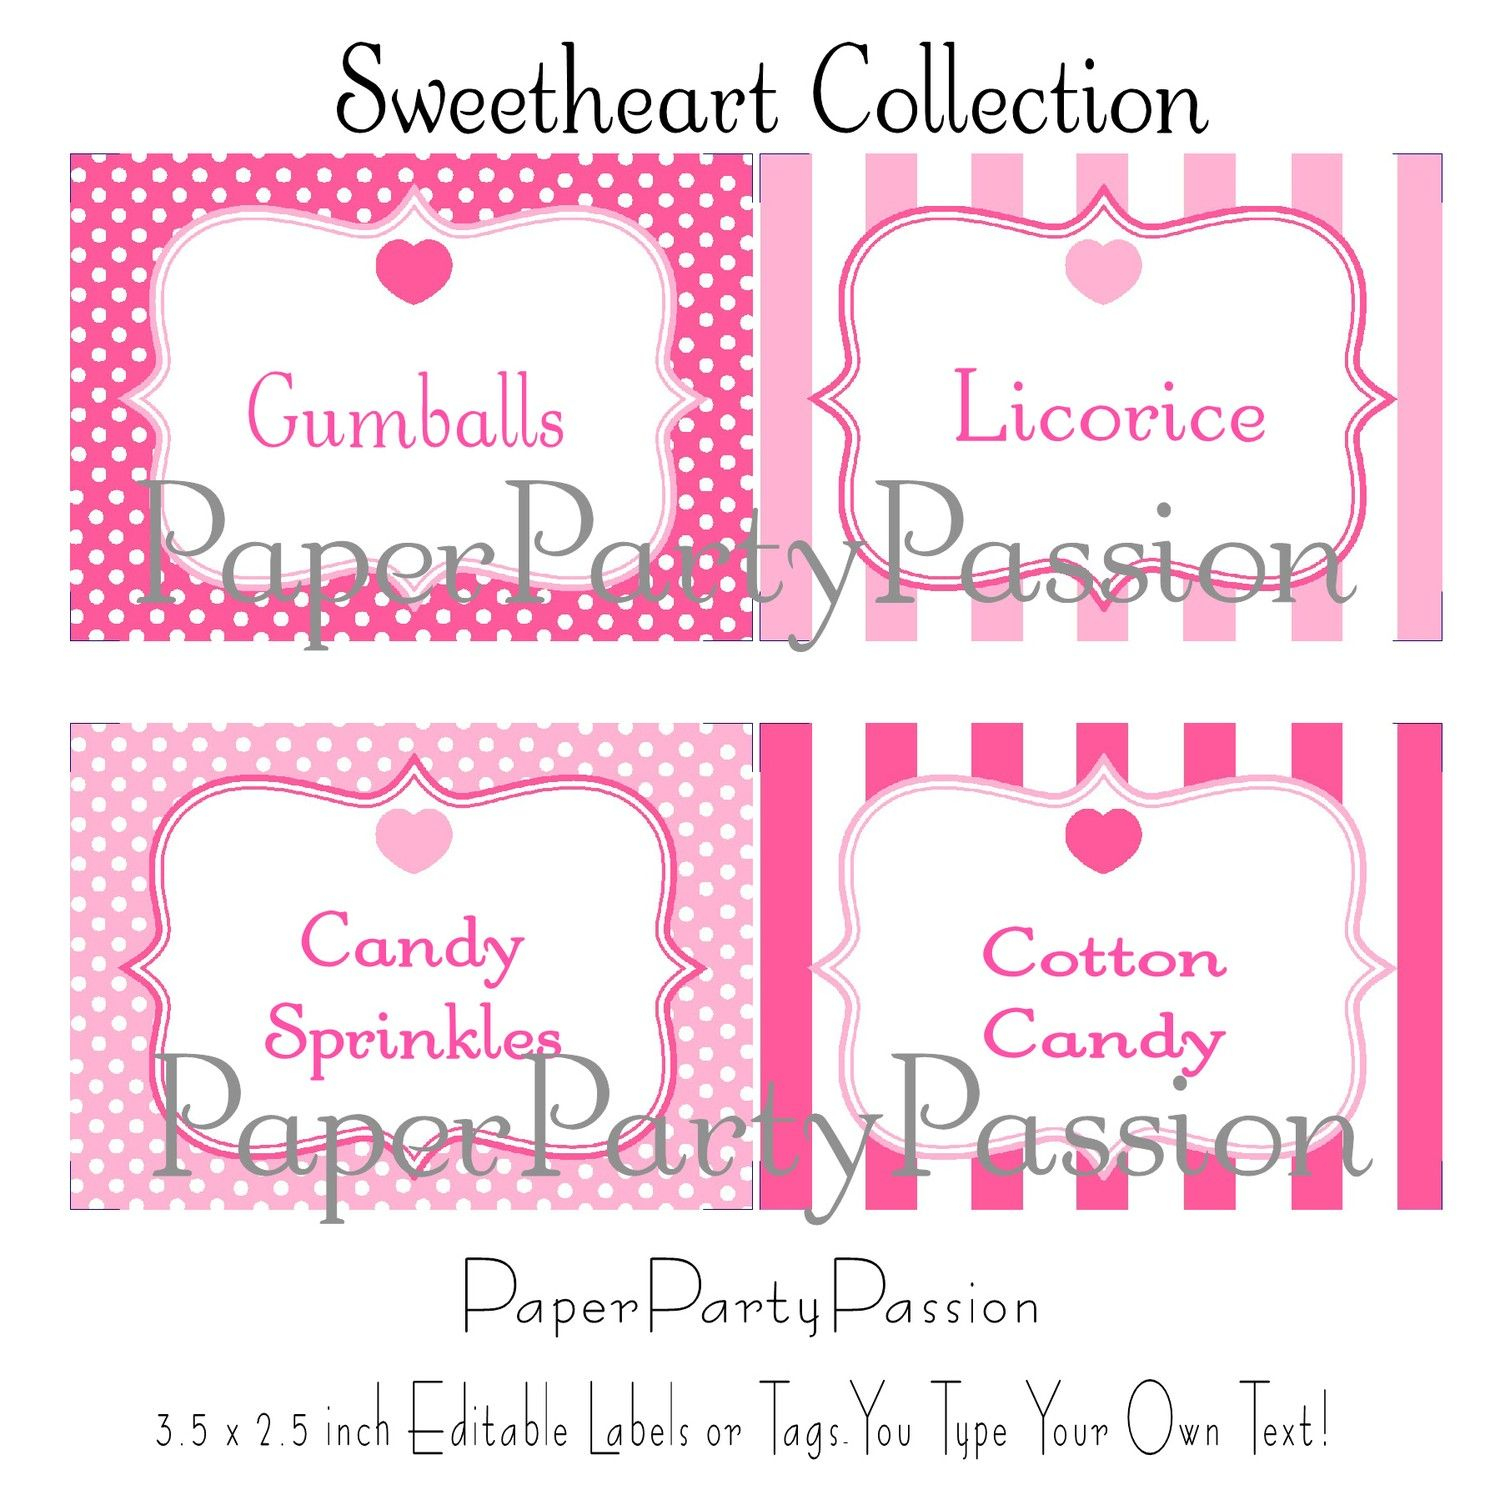 Printable Candy Buffet Template | Wedding Candy Bar Buffet Supplies - Free Printable Sweet 16 Labels